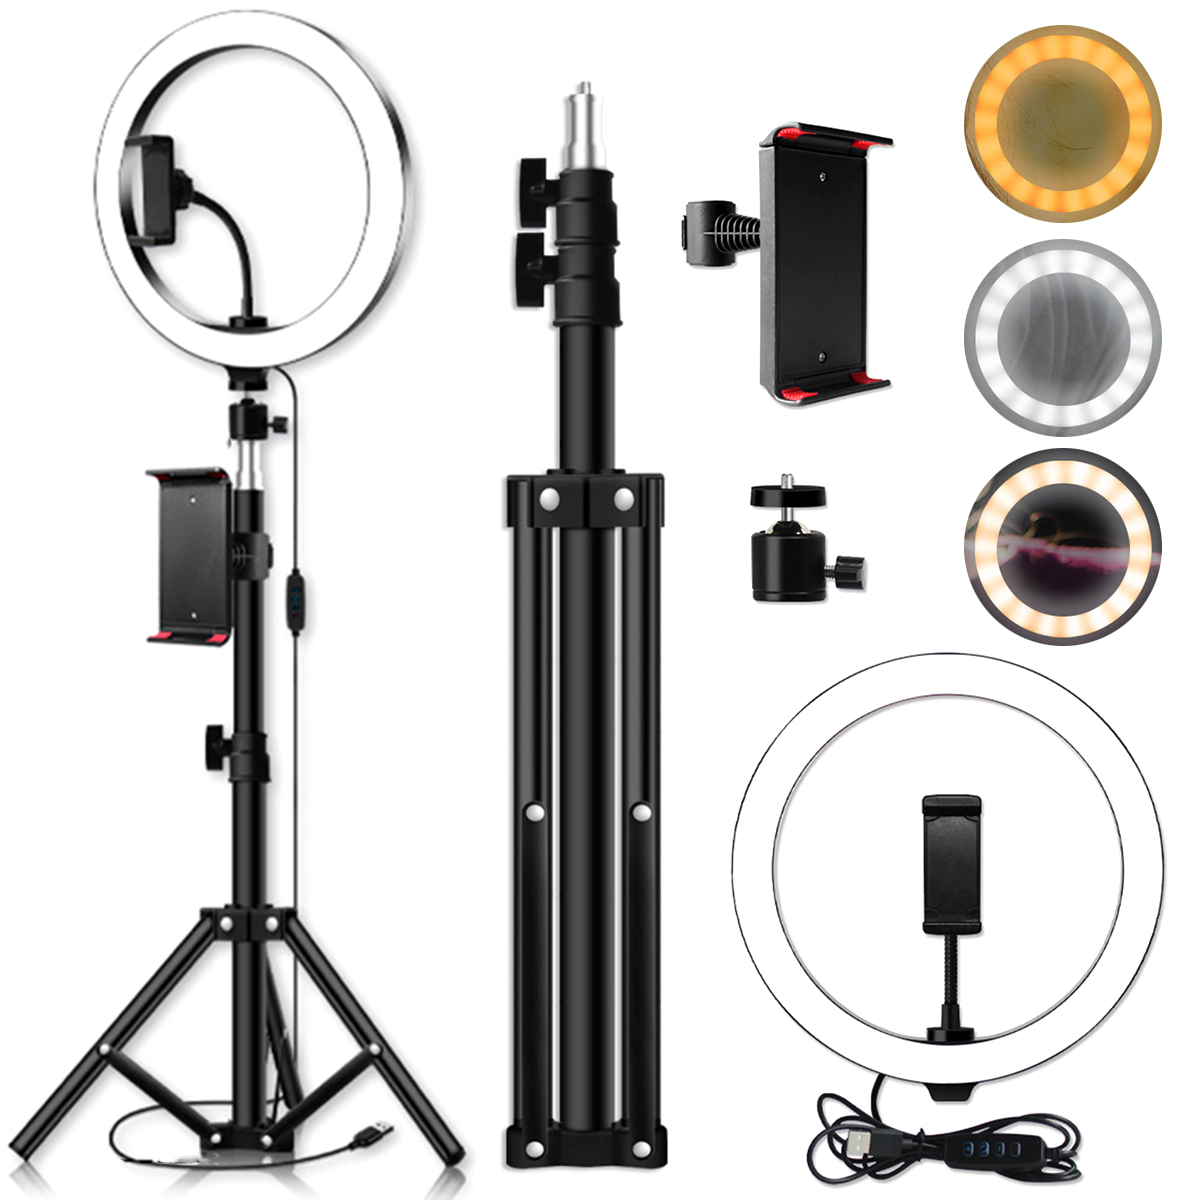 10inch LED Ring Light Dimmable LED Live Video Ring Light Set With Tripod Tablet Clip For Live Video Makeup Tutorial Etc